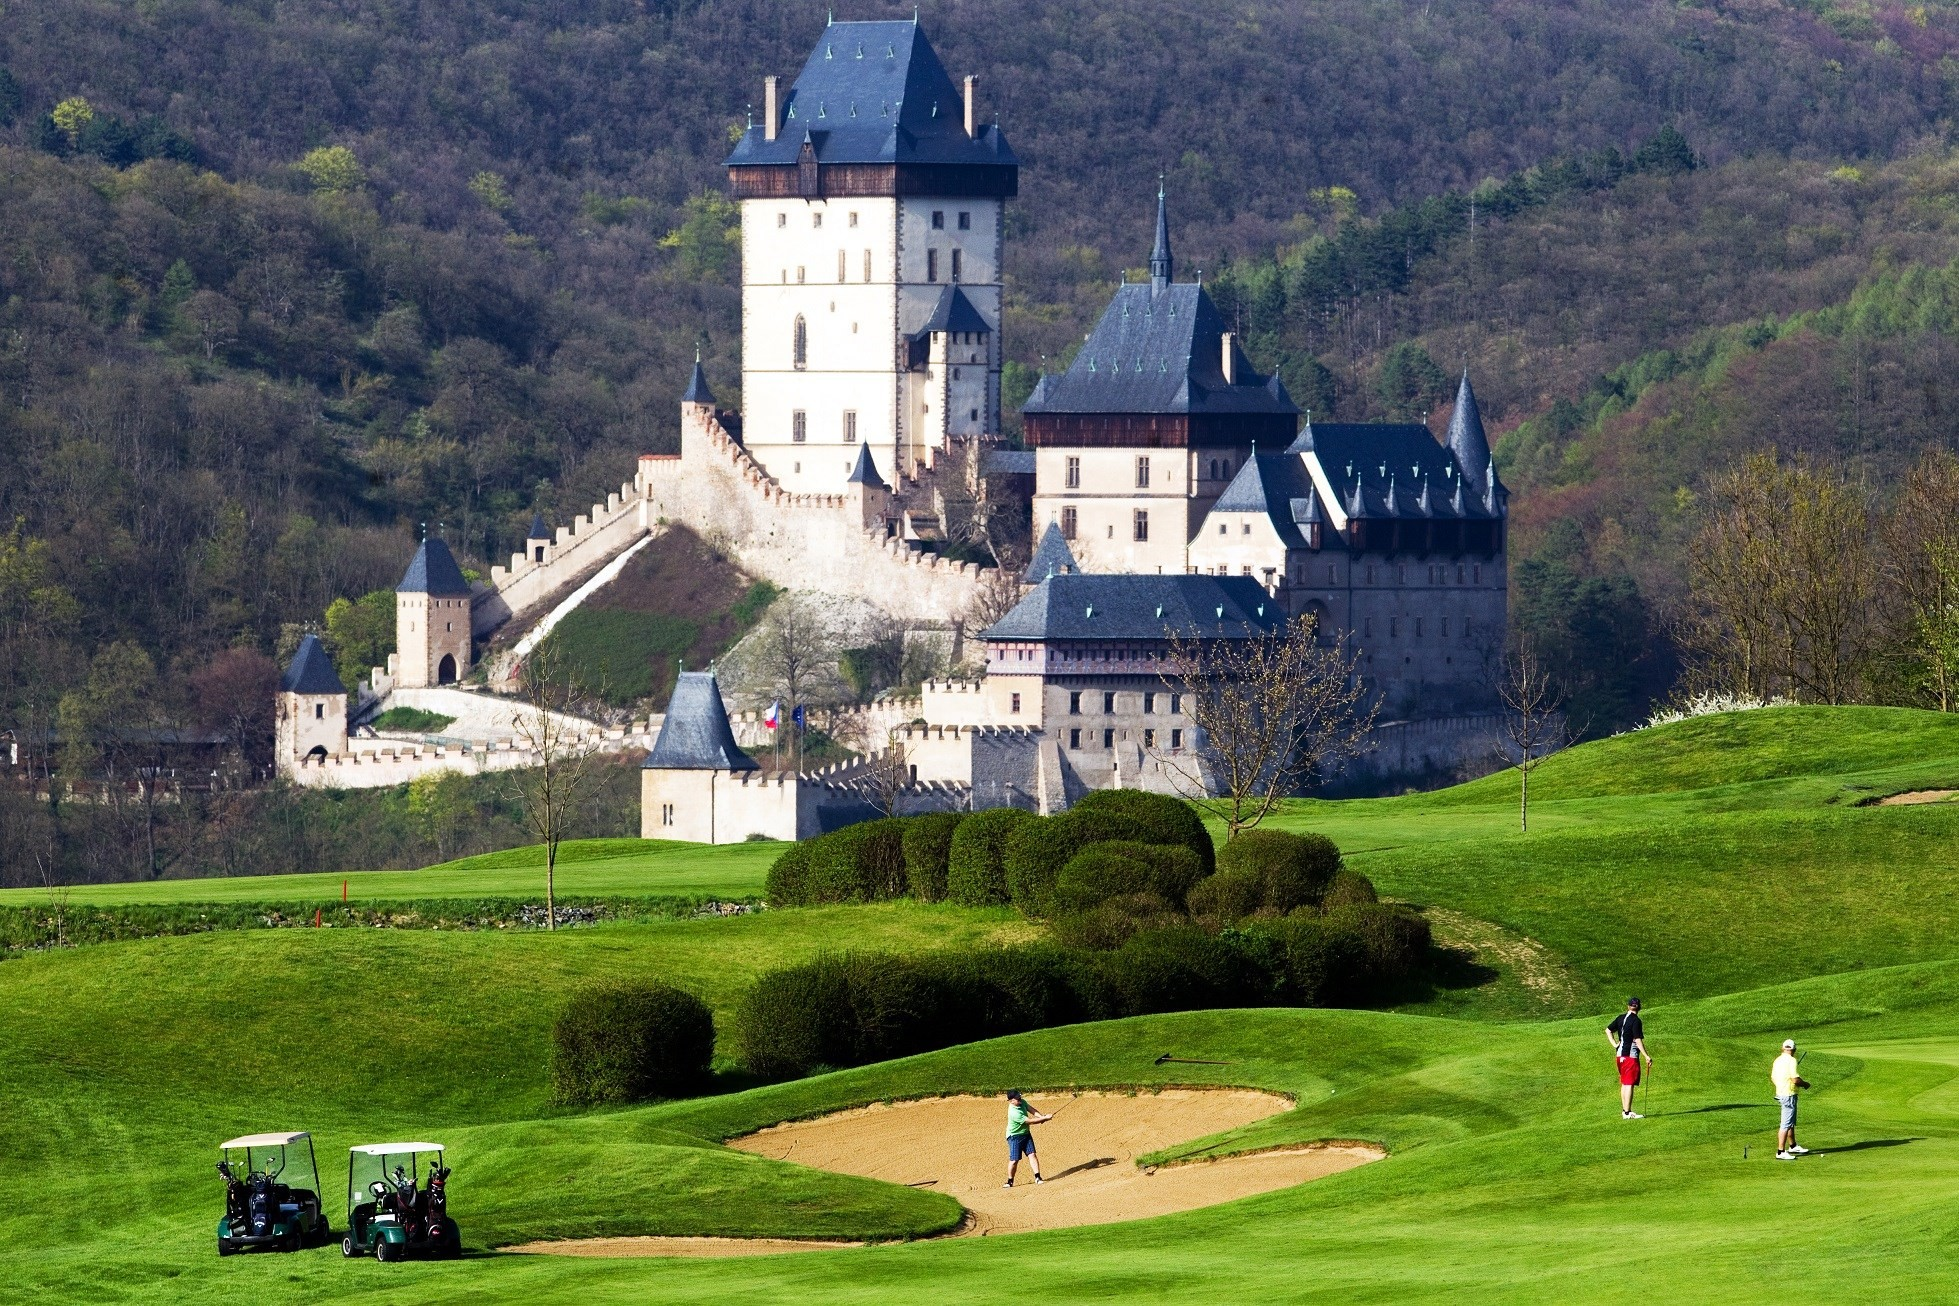 Golf_Resort_Karlstejn_01.jpg